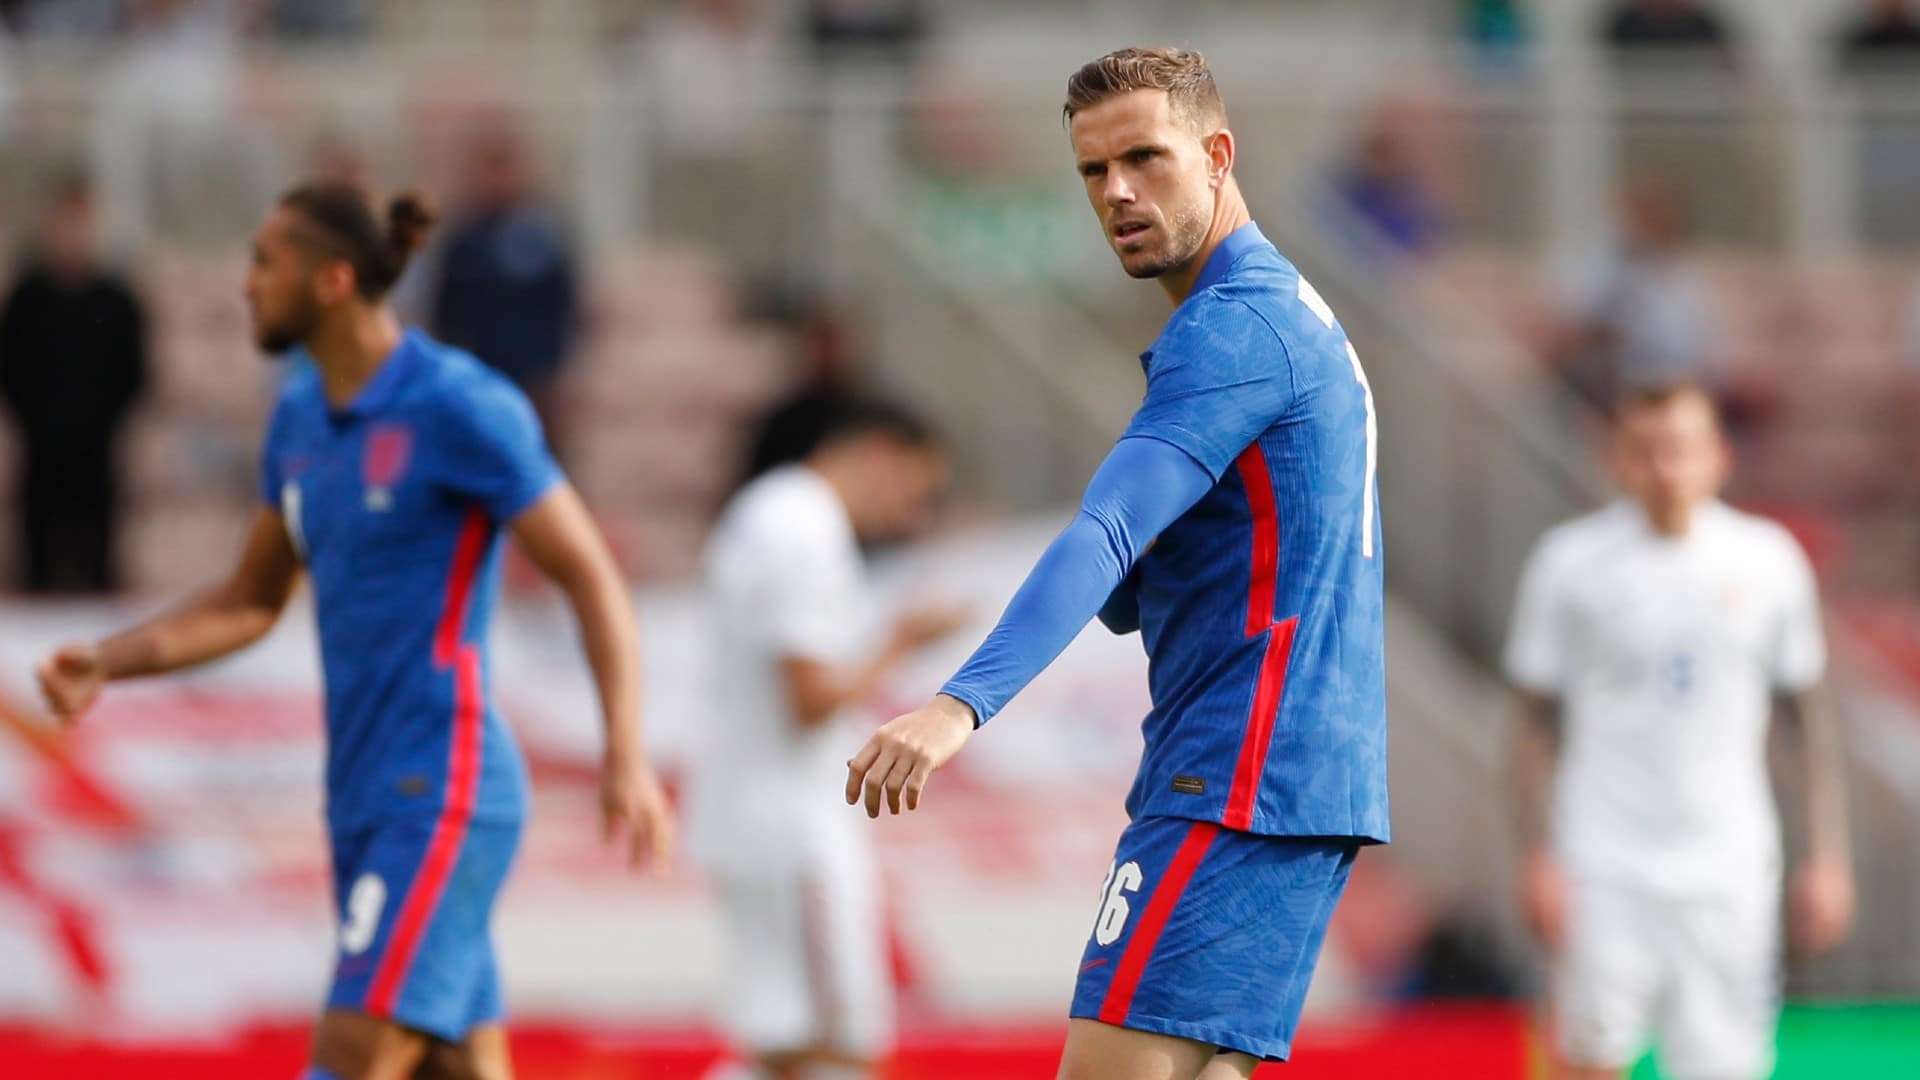 henderson-no-longer-too-stricken-about-penalty-miss-vs-romania-as-he-bids-to-be-prepared-for-englands-euro-2020-opener-against-croatia.jpg